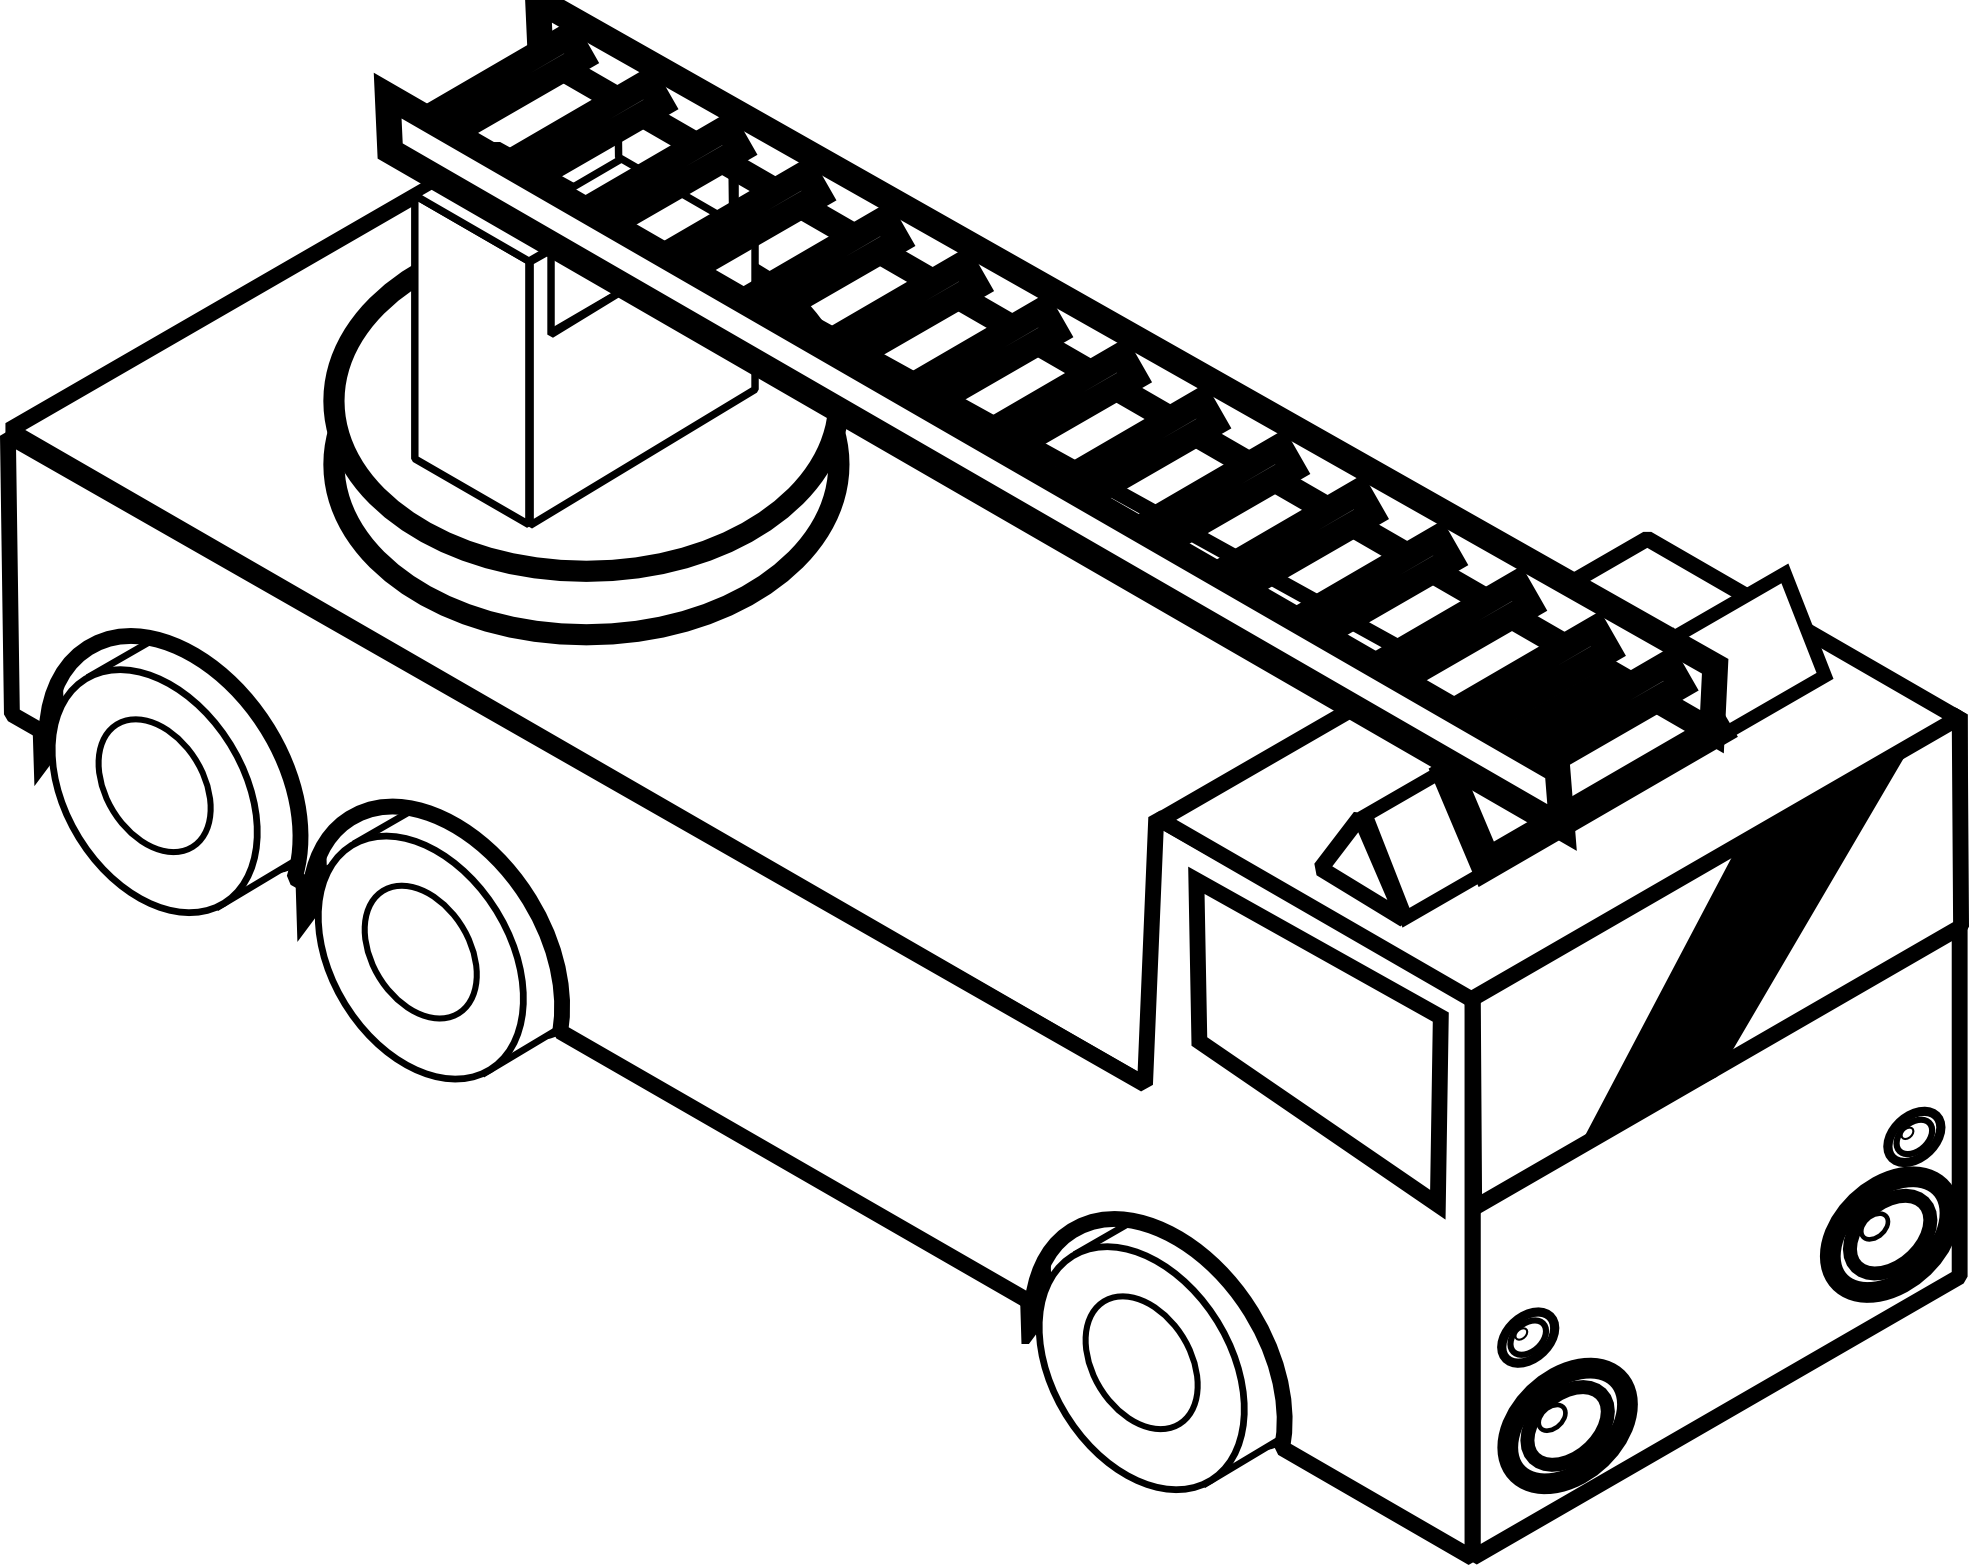 Fireplace clipart printable. Truck black and white